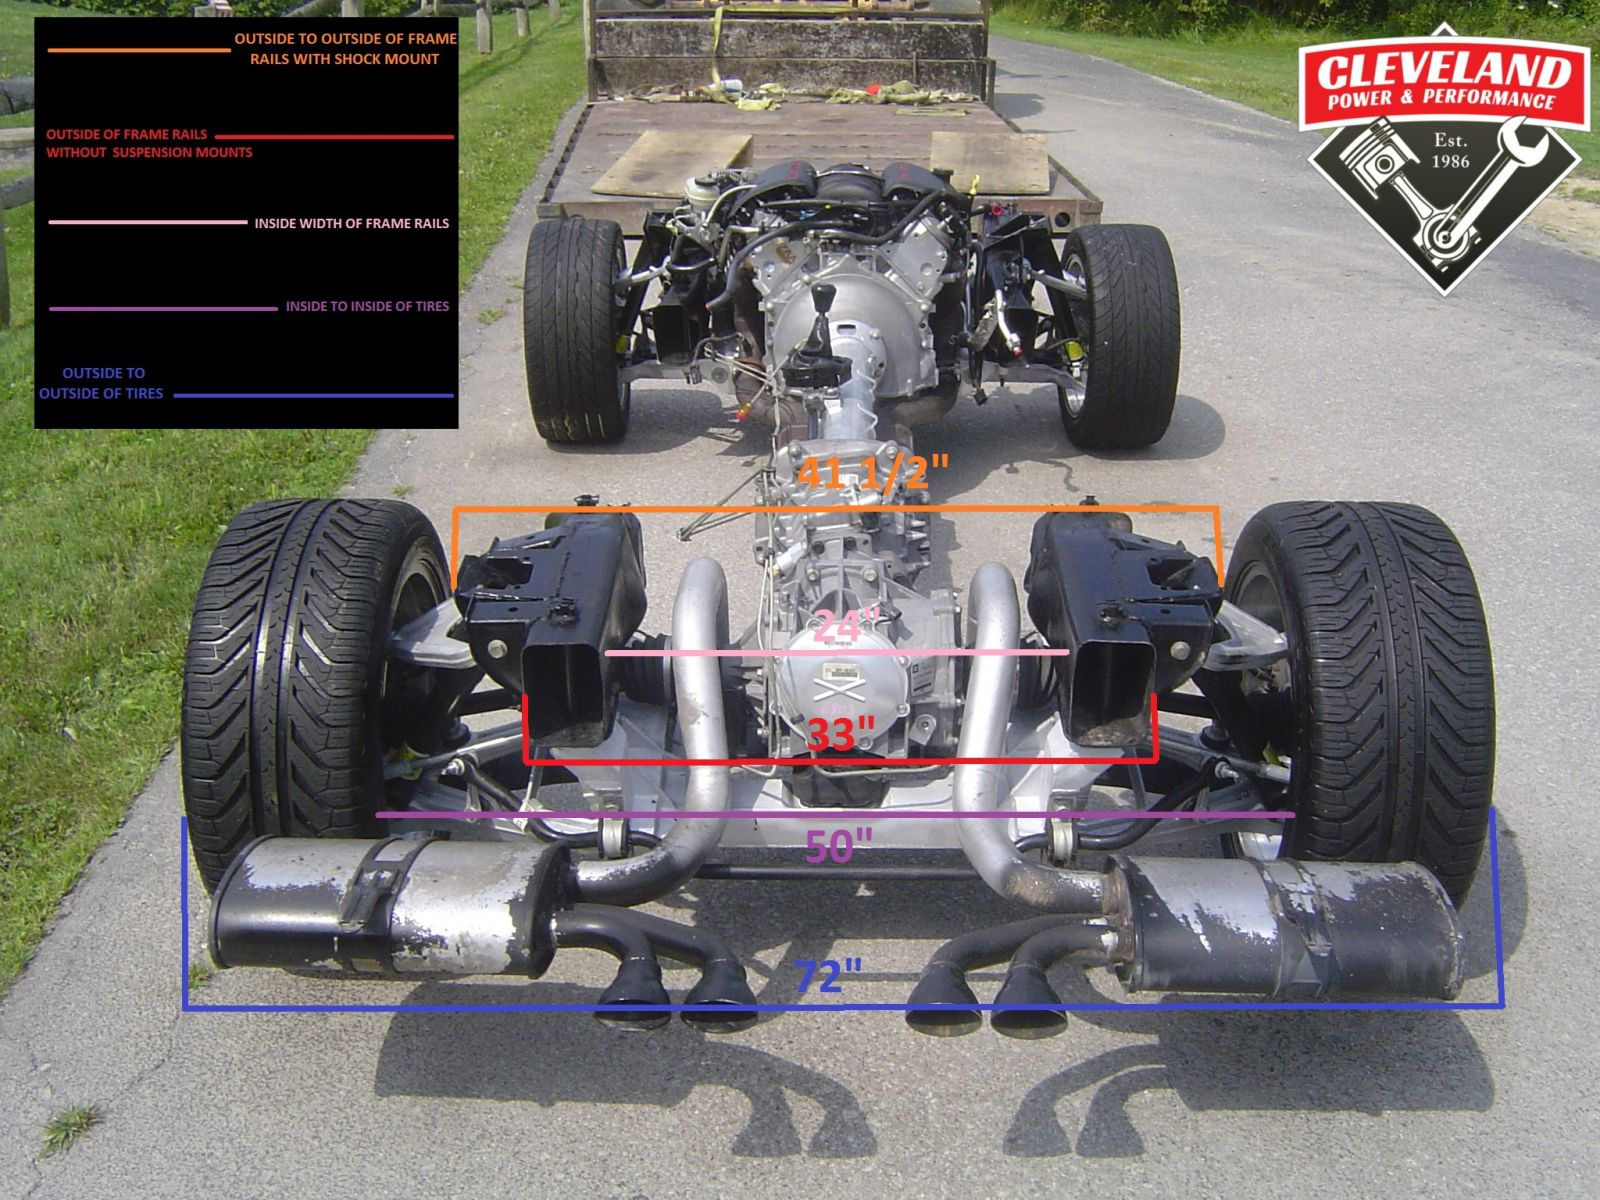 Wrecked Cars For Sale >> Corvette Rolling Chassis Measurements - Cleveland Power & Performance